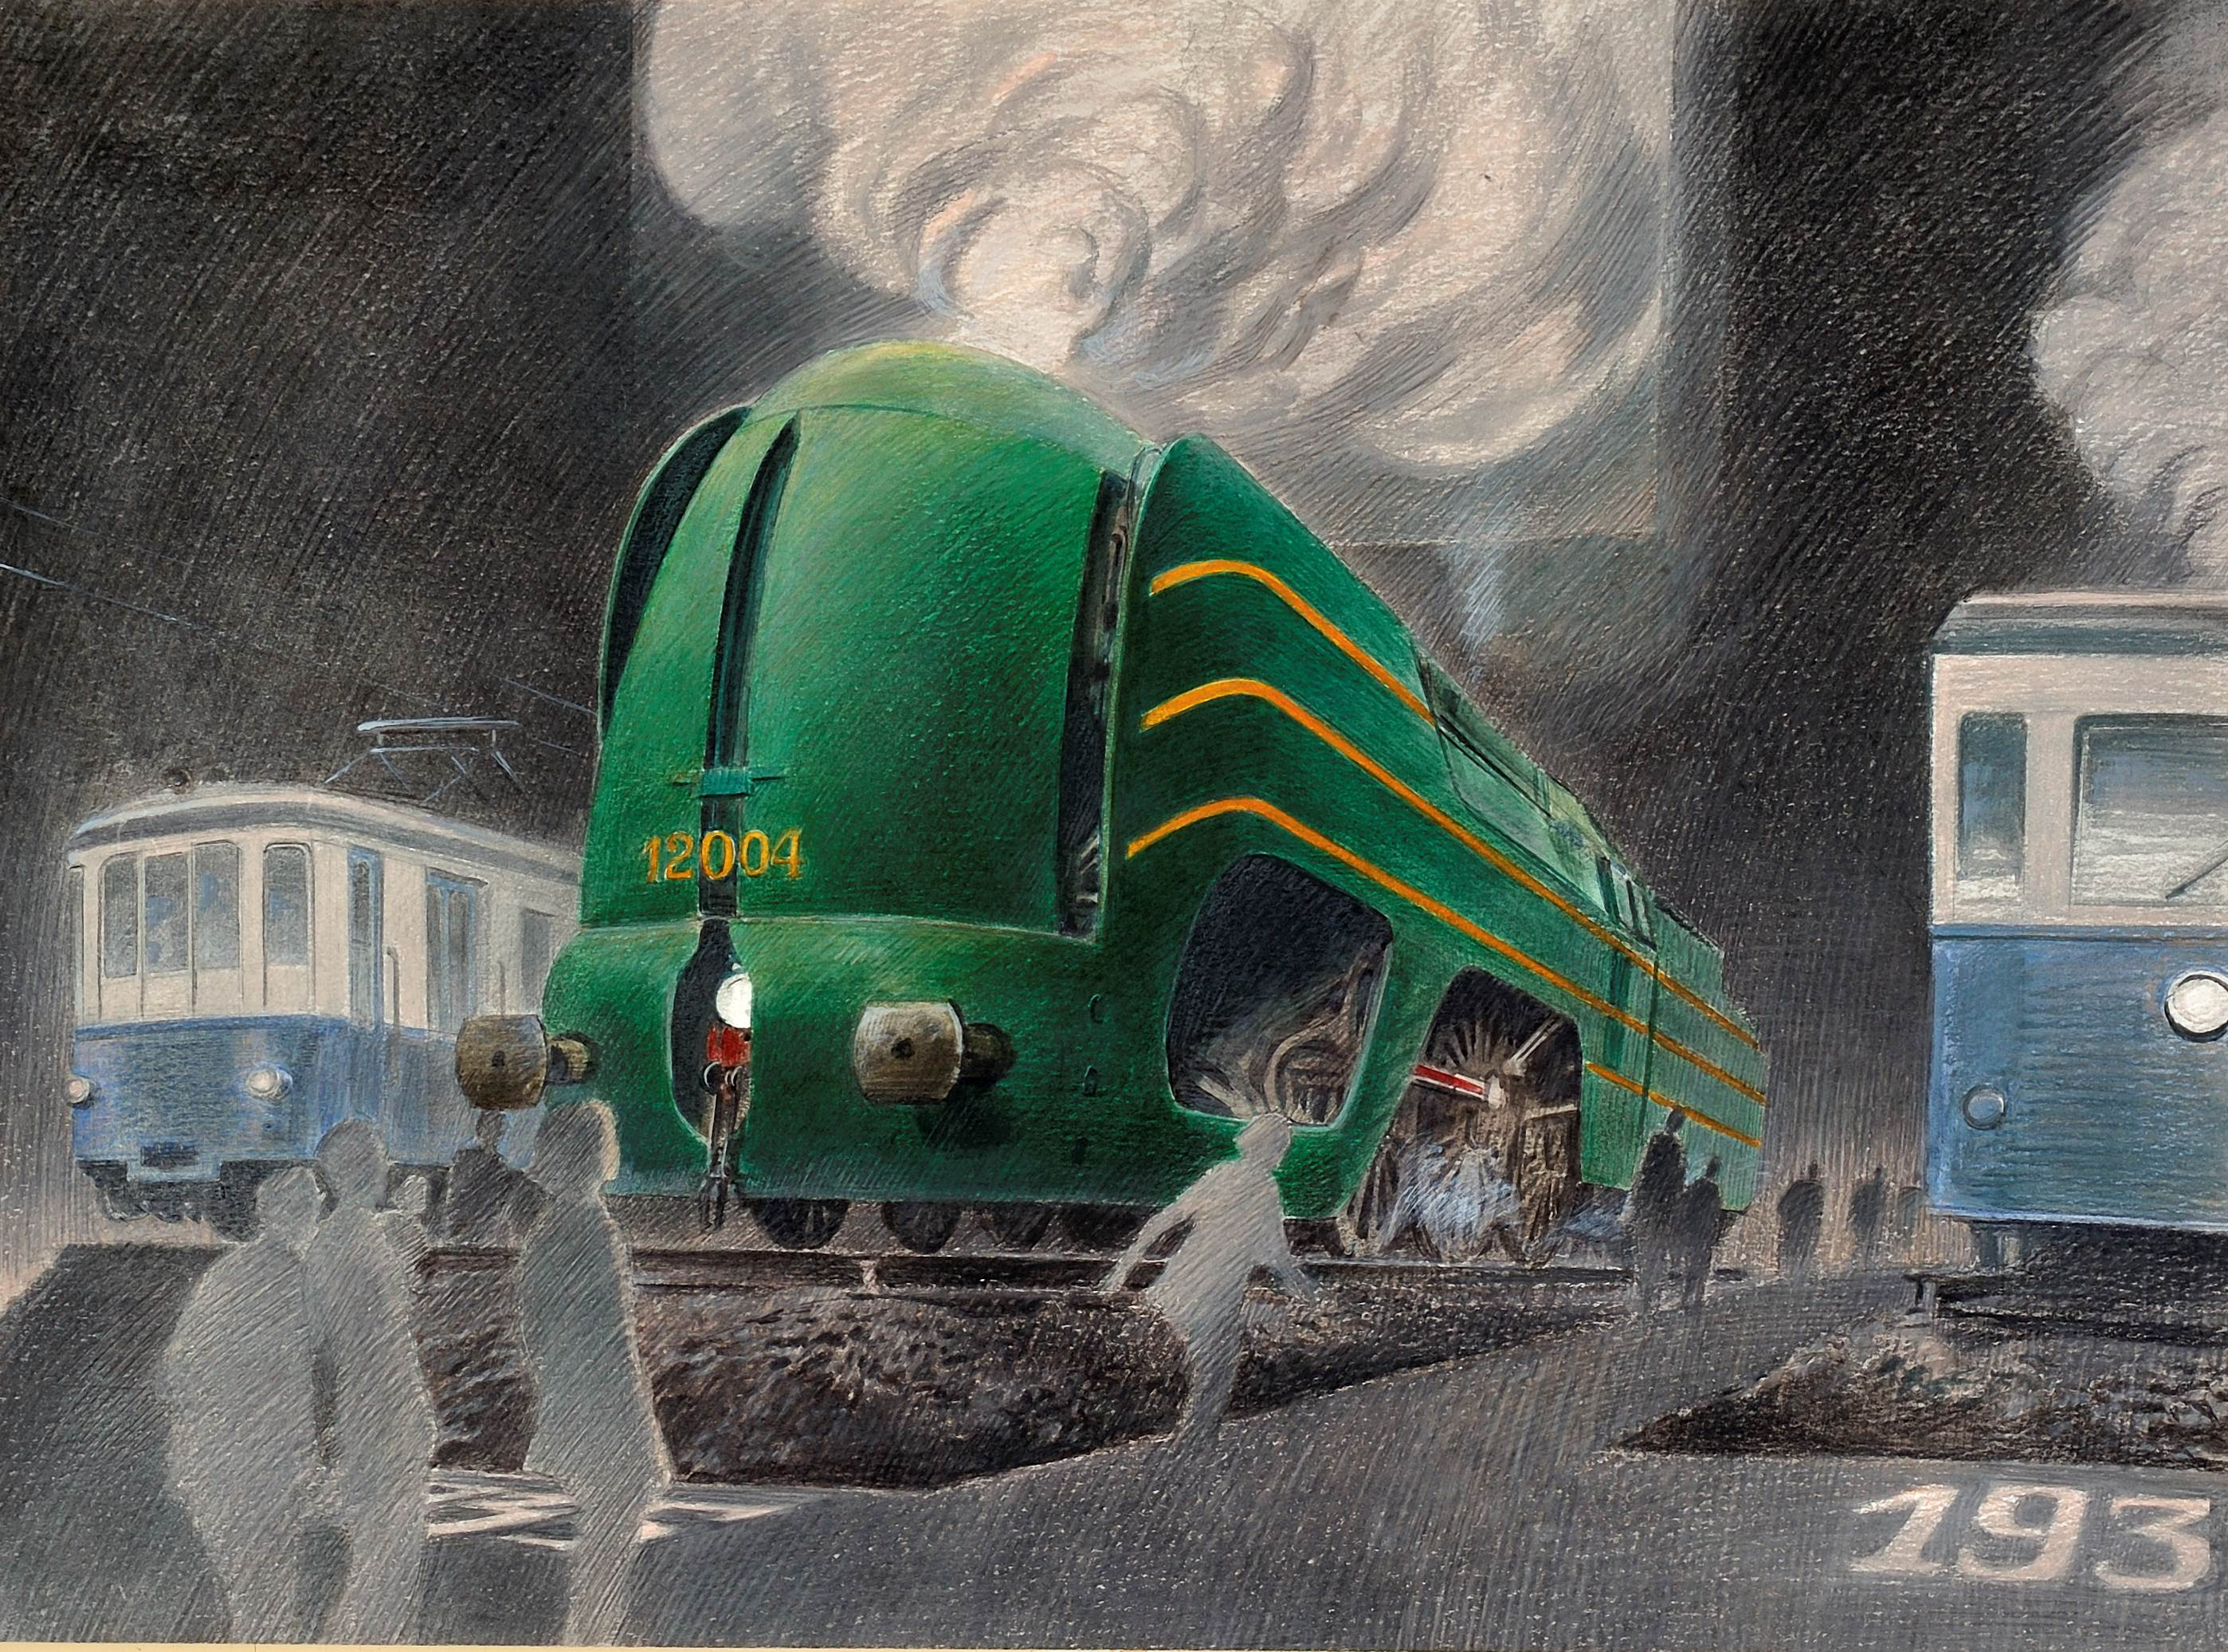 Train World acquires images by Schuiten